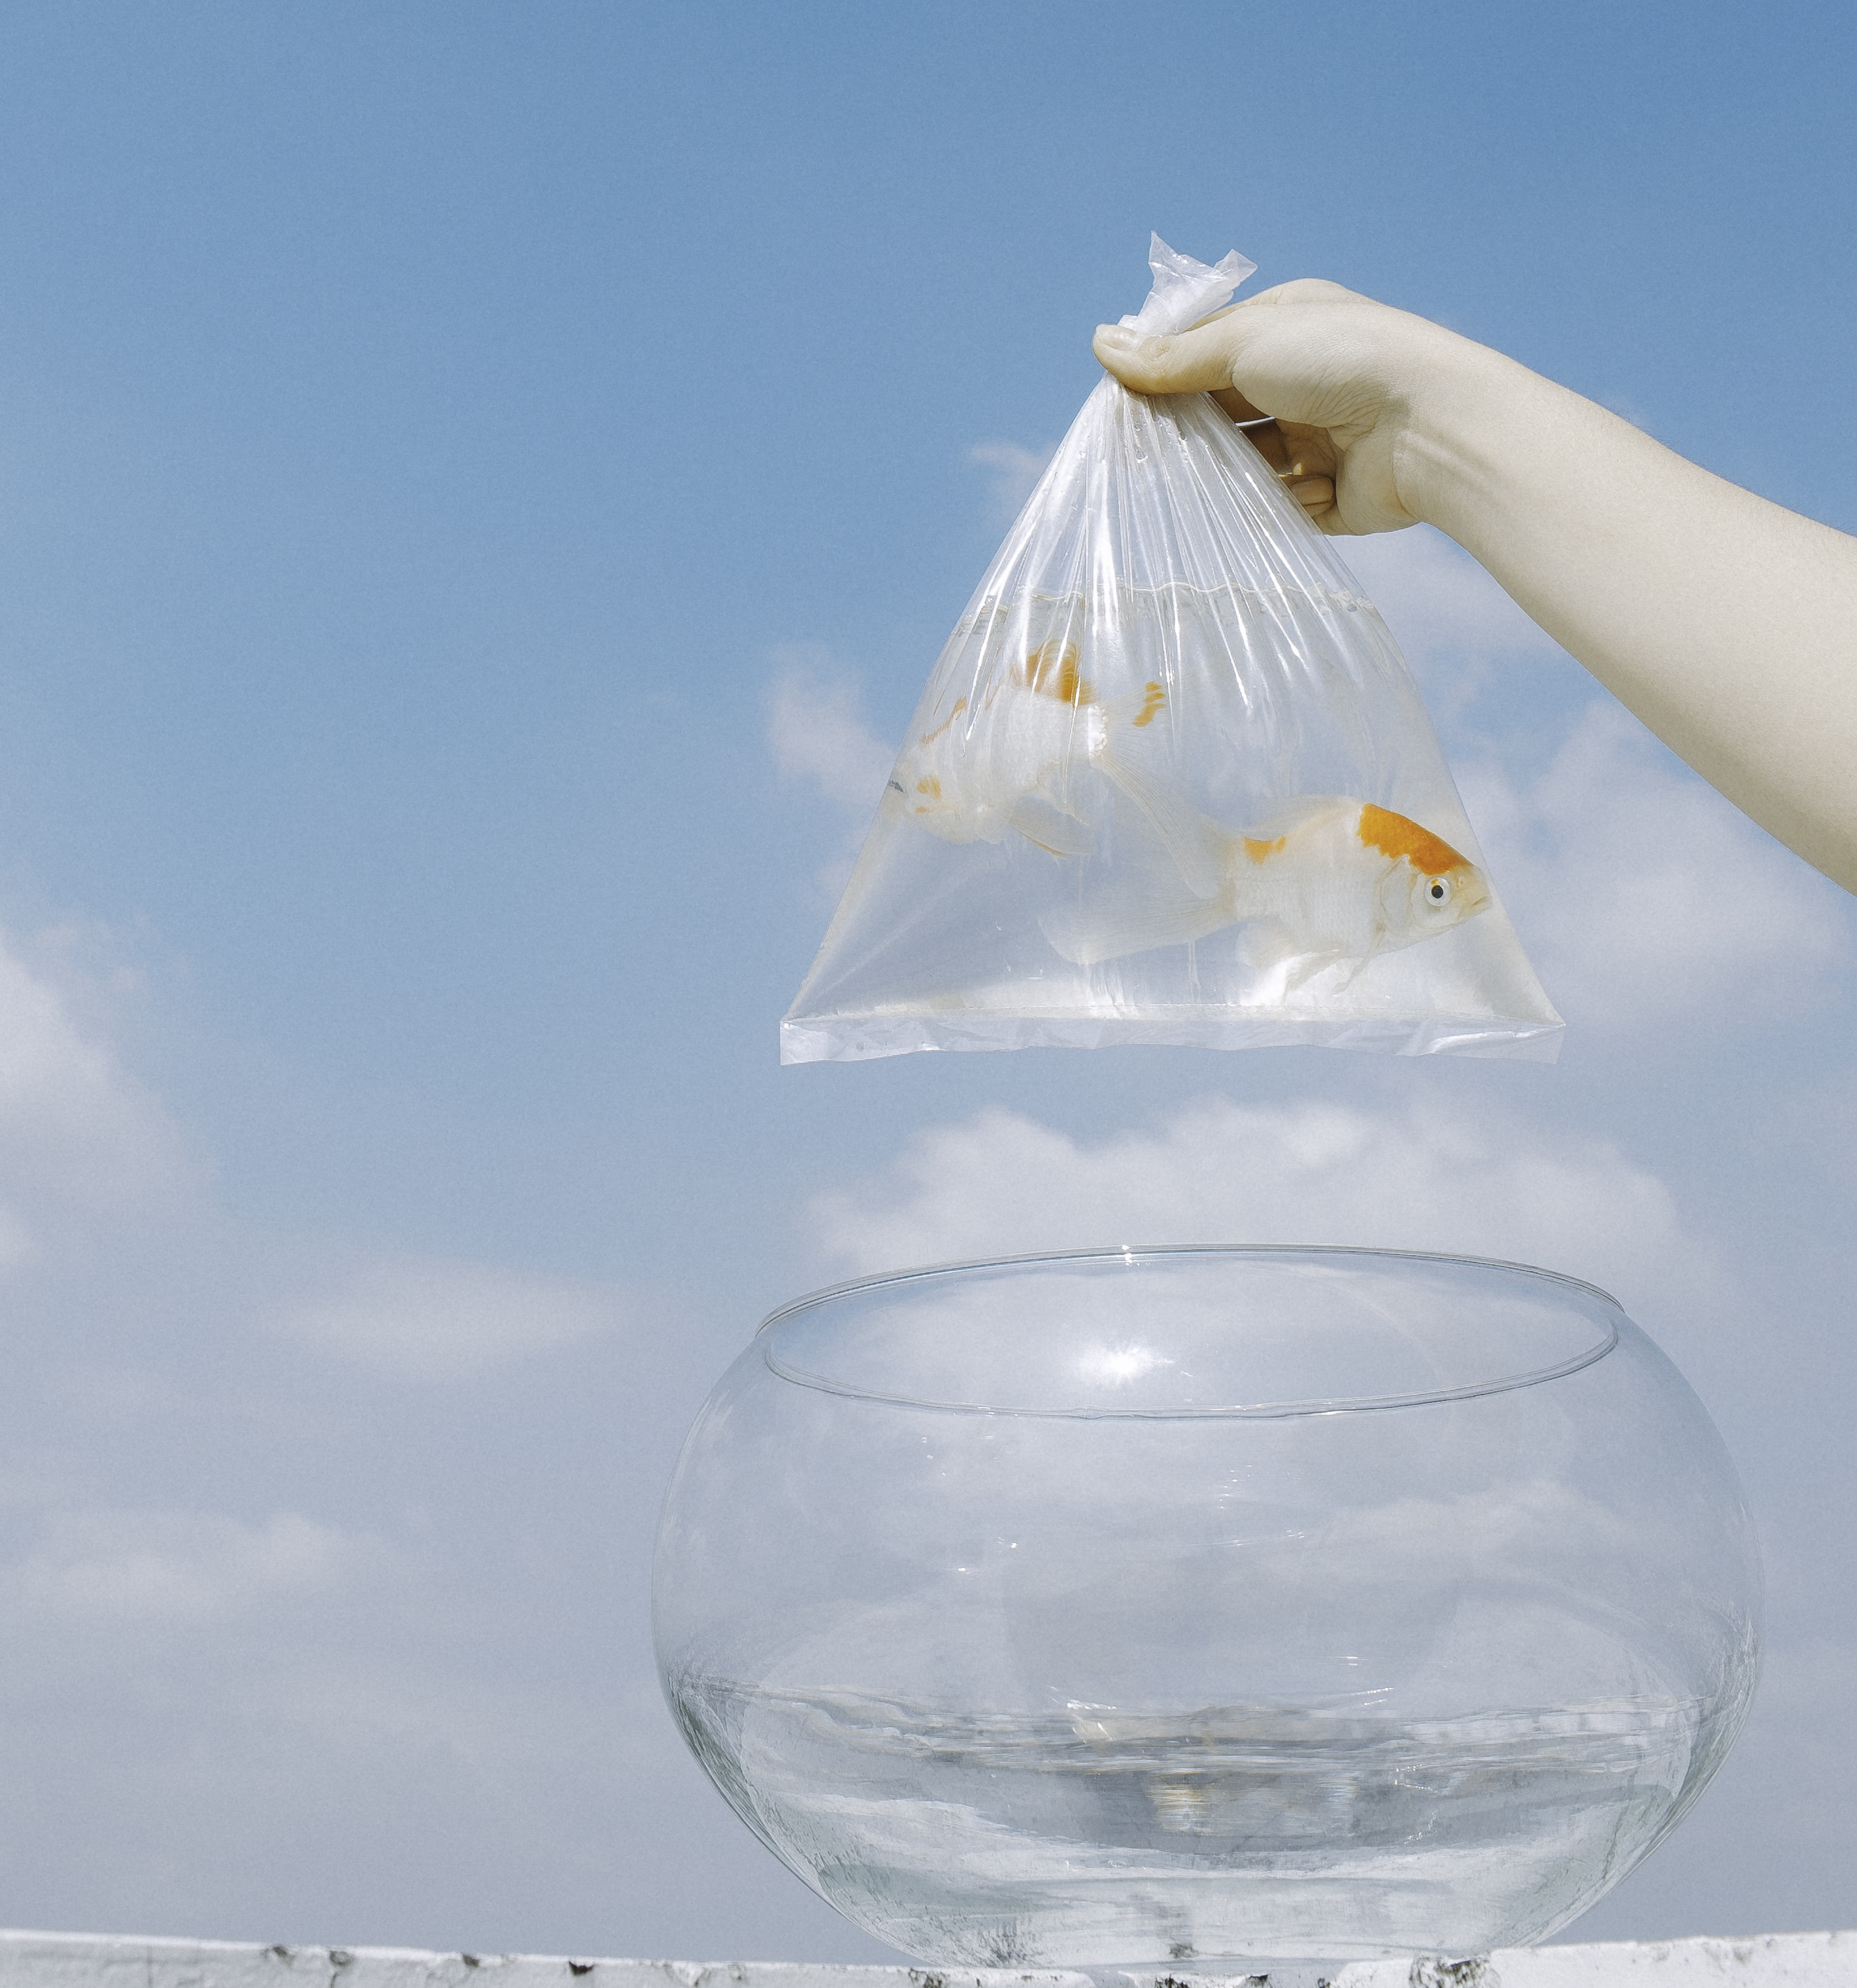 clear plastic bag of two goldfish